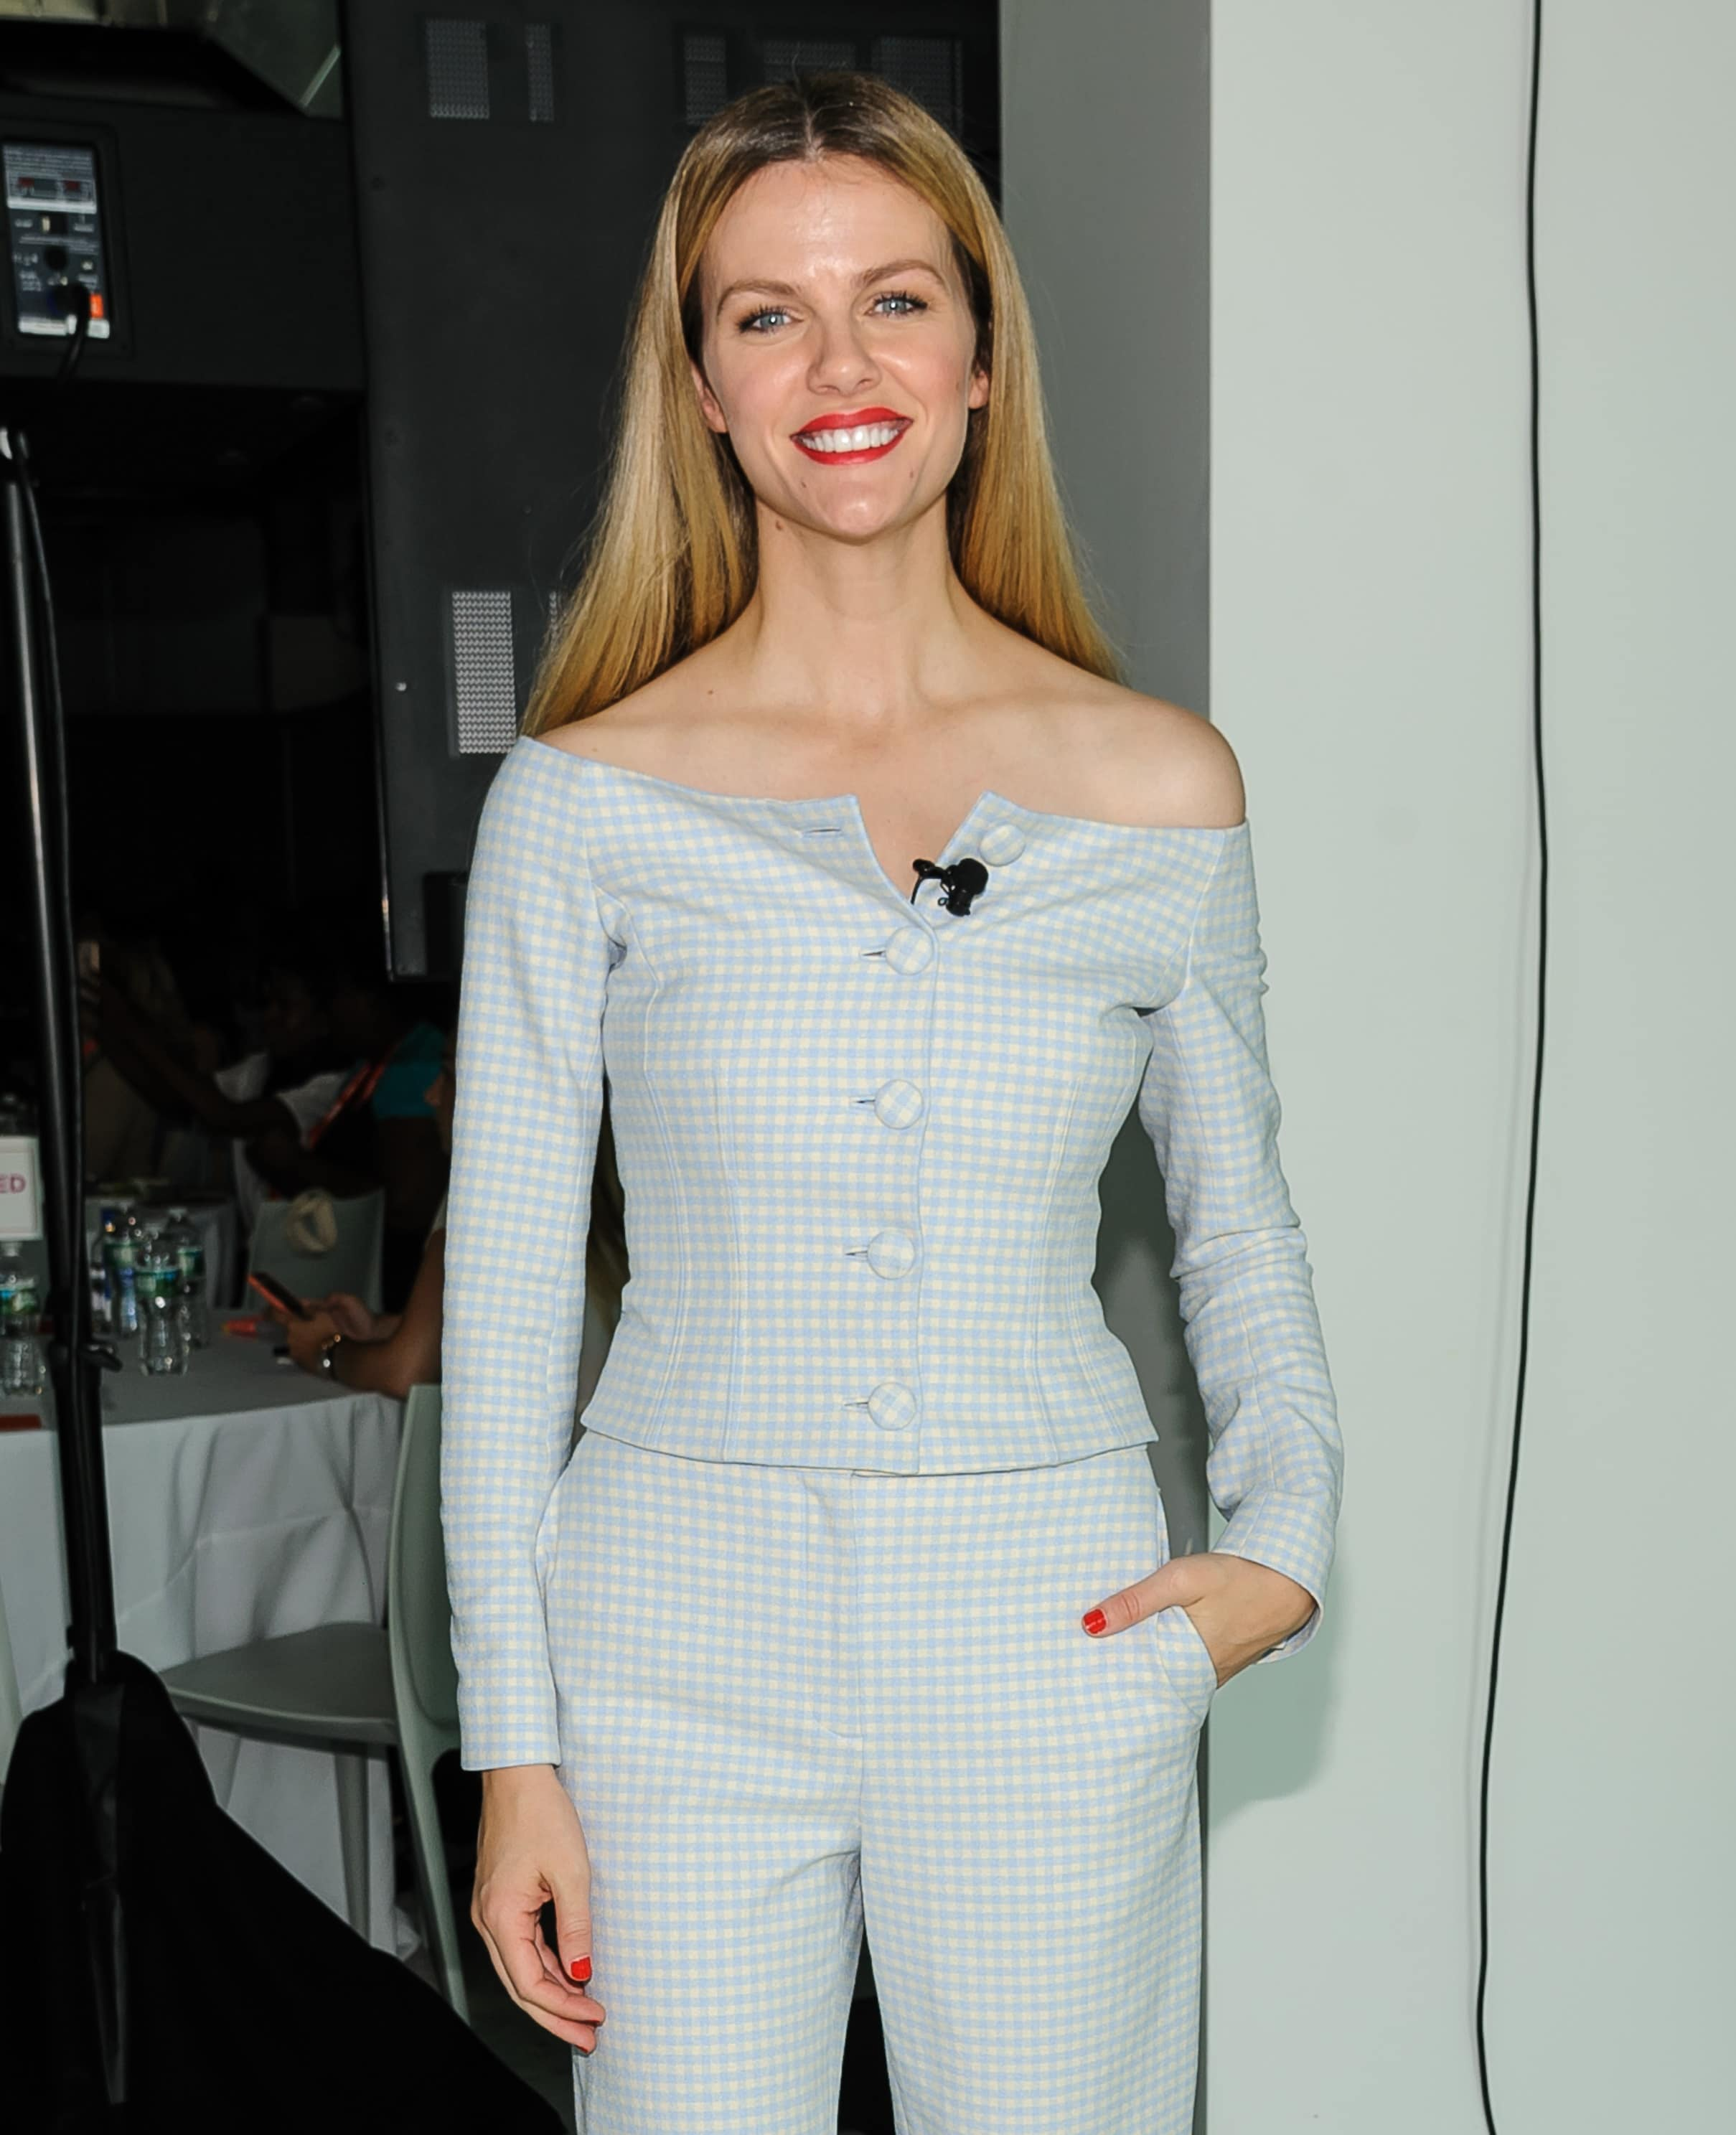 Brooklyn Decker was one of the keynote speakers at the 2018 #BlogHer Creators Summit in New York City on August 8, 2018